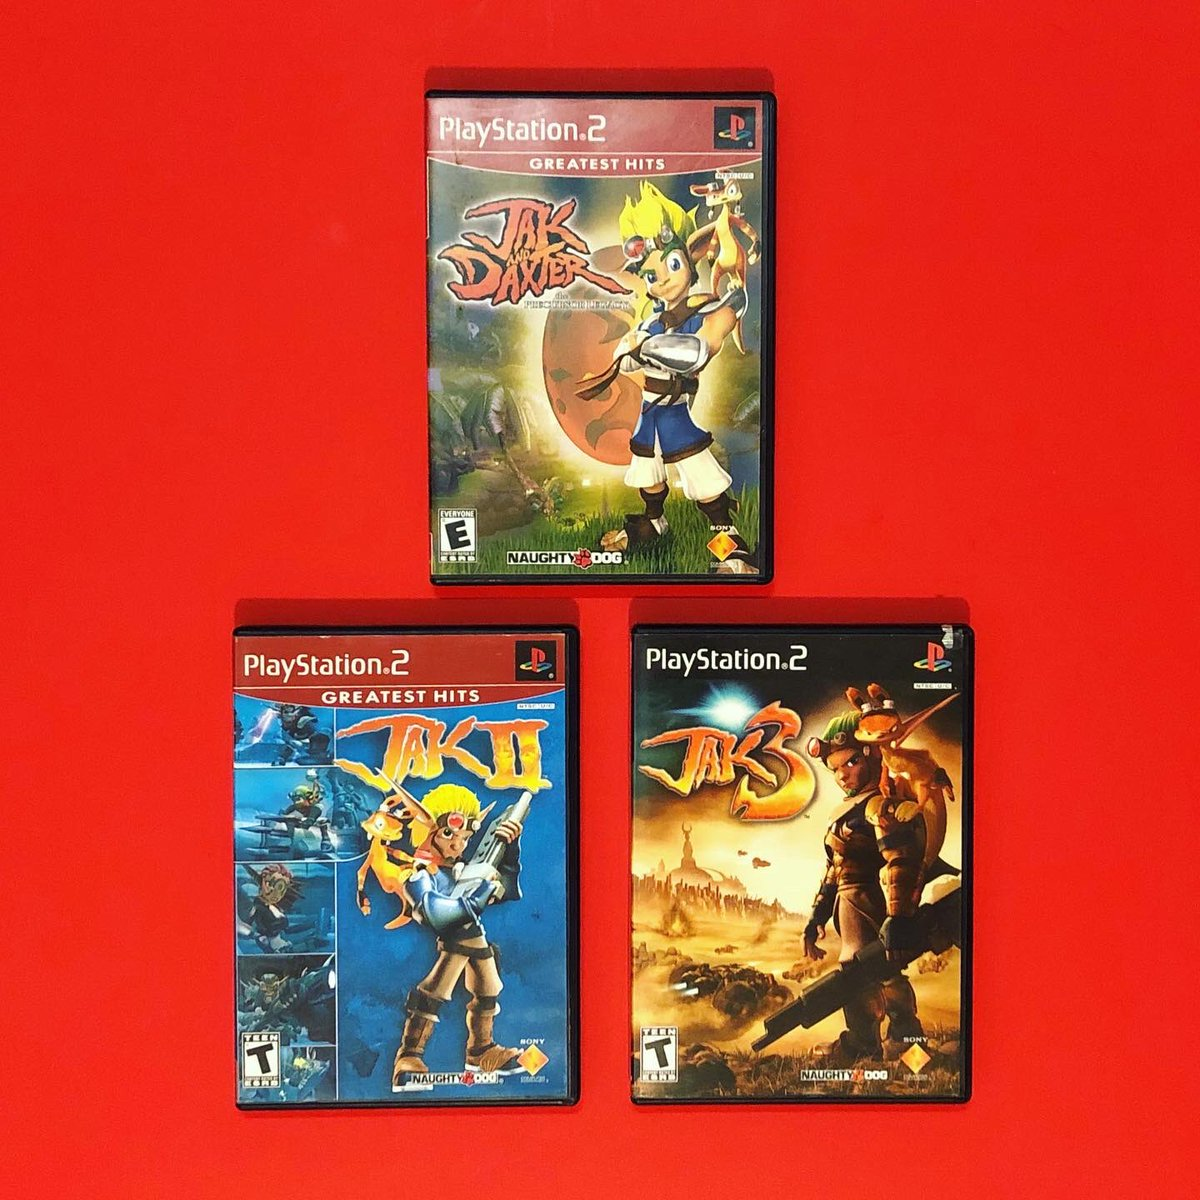 Jak and Daxter trilogy! Finally have the big 3. — -- #jak3 #jak2 #jakanddaxter #playstation2 #jakanddaxtertrilogy #cib #cibsunday #booklet #disc #naughtydog #naughtydoggames #videogame #gaming #retrogaming #shooter #platformer #gamecollecting #gamecollection #gamecollectorpic.twitter.com/EiBVnKZwjw